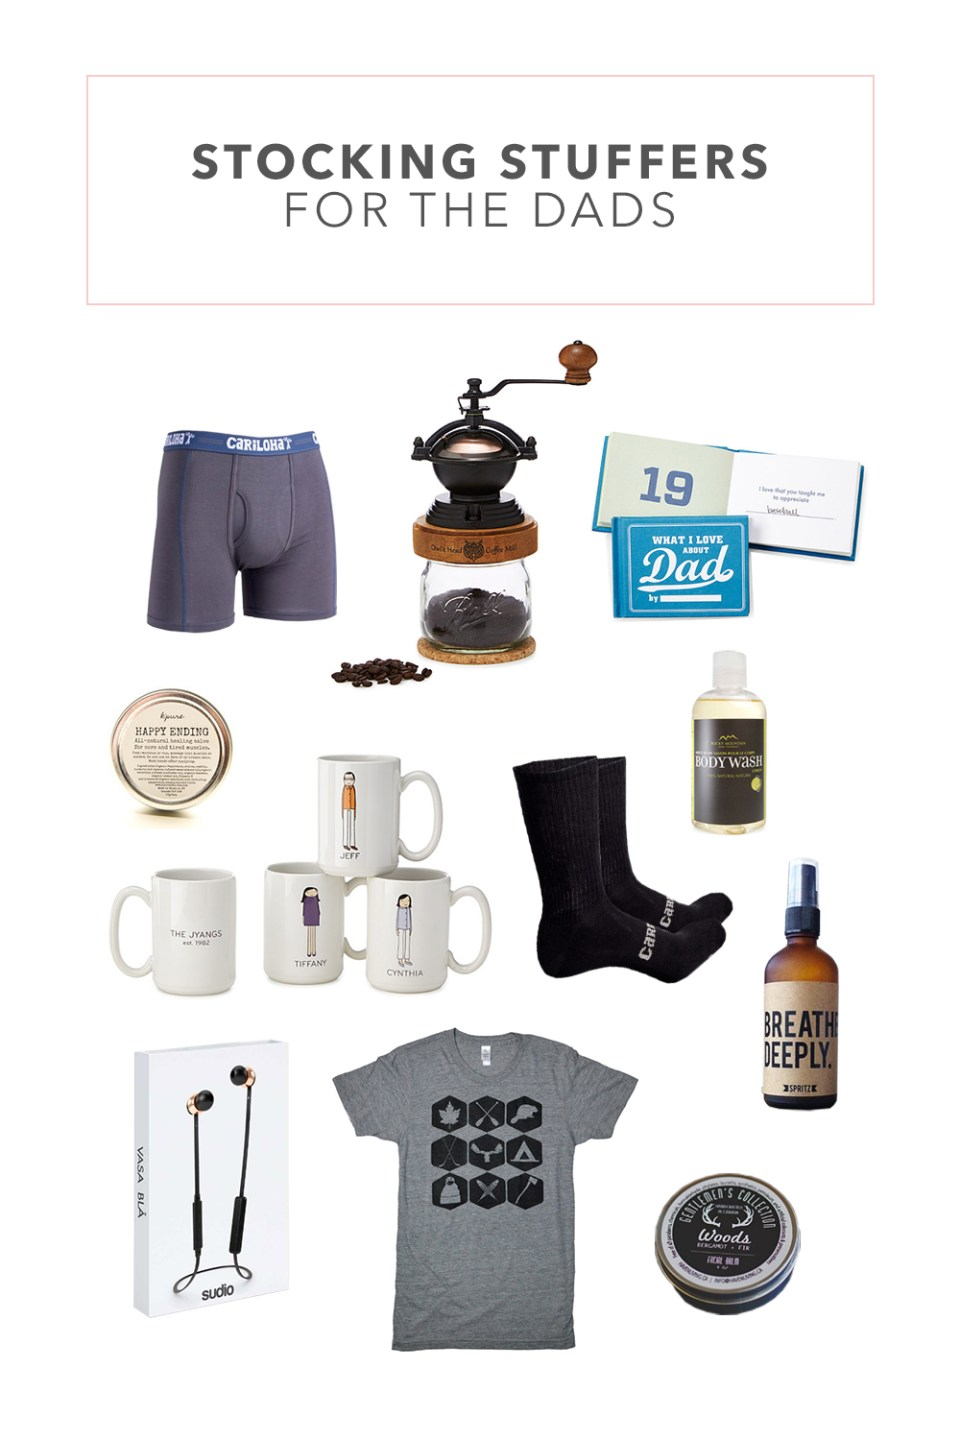 Stocking Stuffer Ideas for Dads in our Lives | Male Stocking Stuffers | Gifts for Men